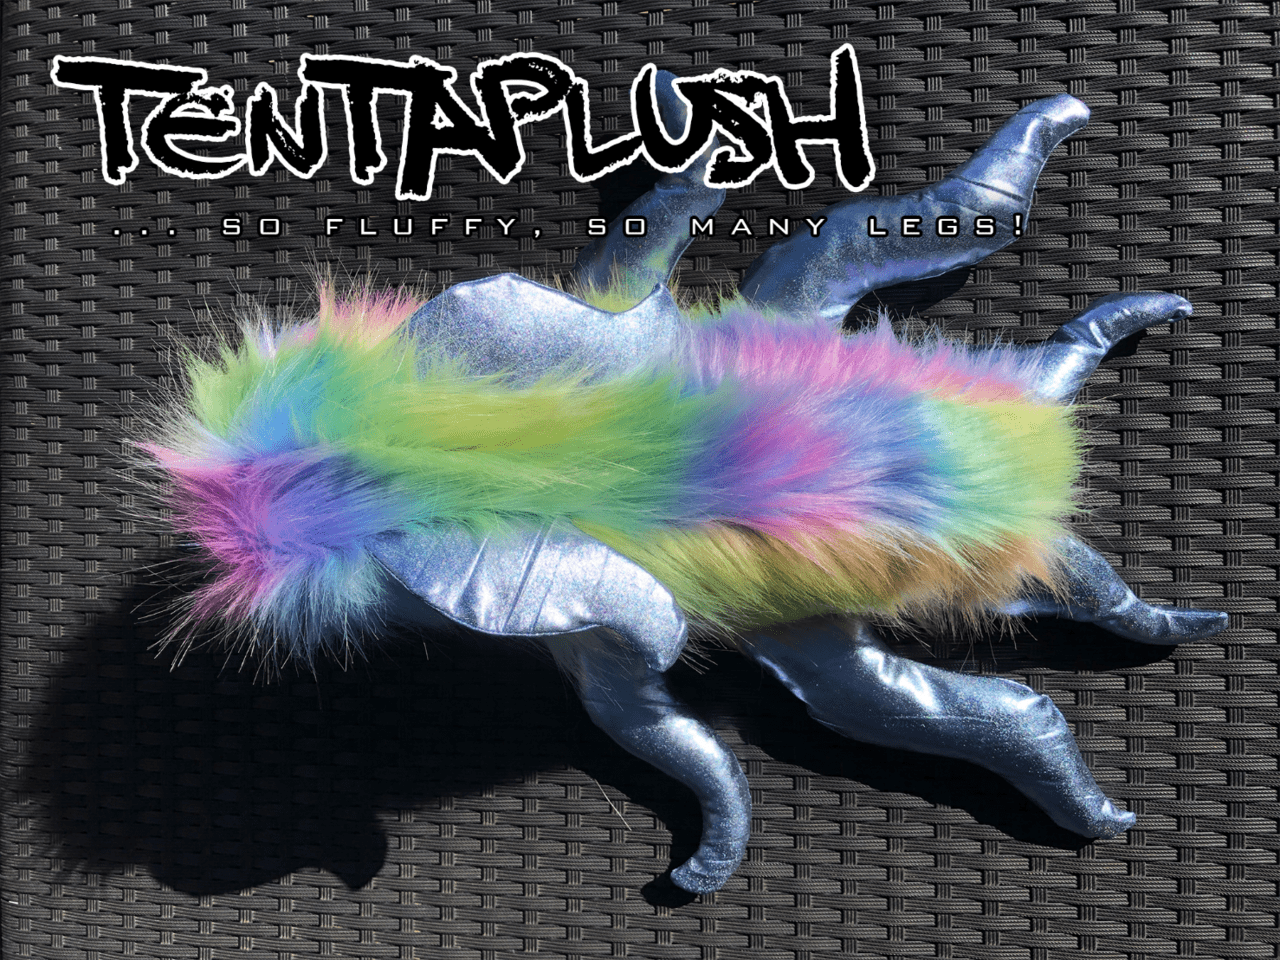 Top-down view of a plush toy. The guinea-pig like body is done in pastel rainbow fur, with six silver lame tentacles protruding from the body.